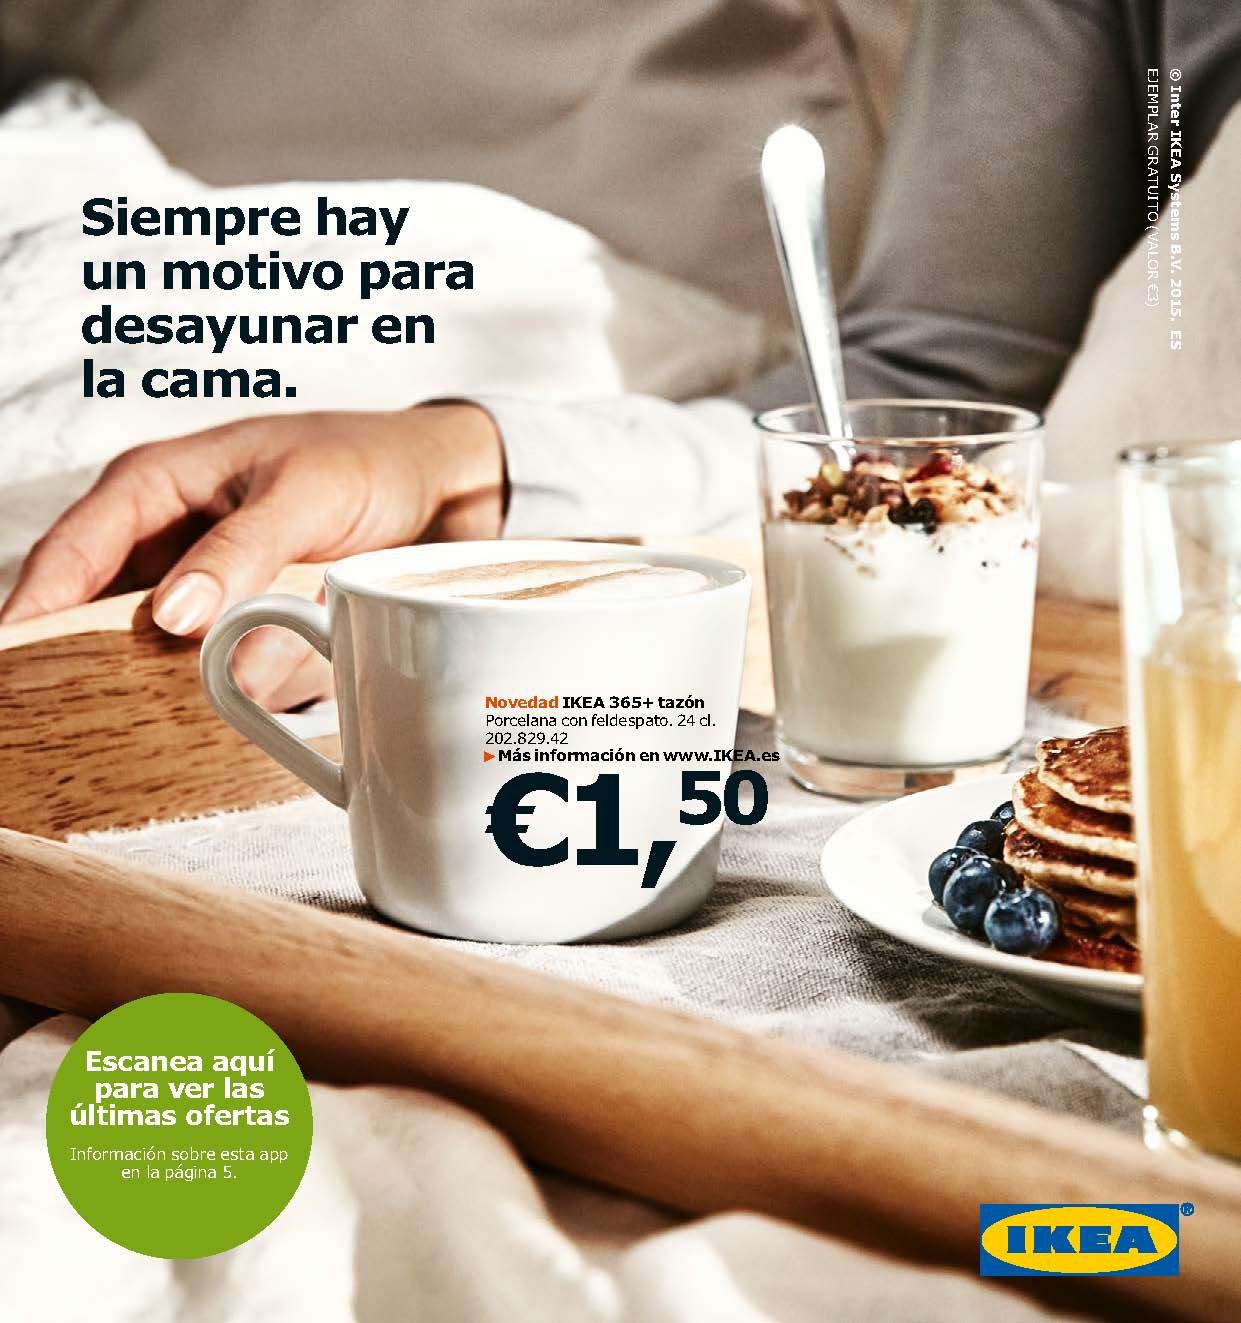 catalog decorate with ikea 2016 es_Page_165